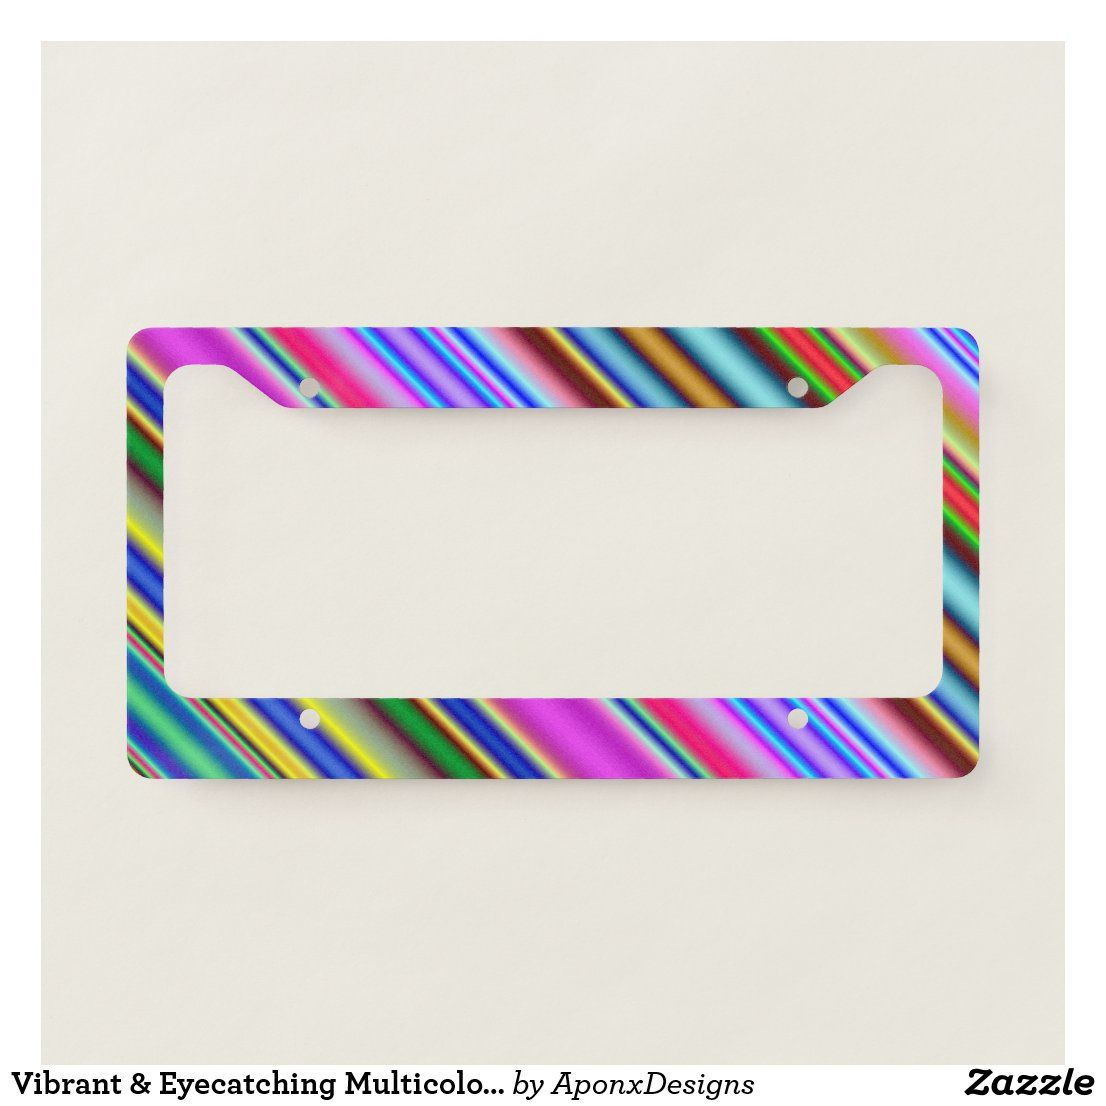 Vibrant & Eyecatching Multicolored Stripes Pattern License Plate Frame